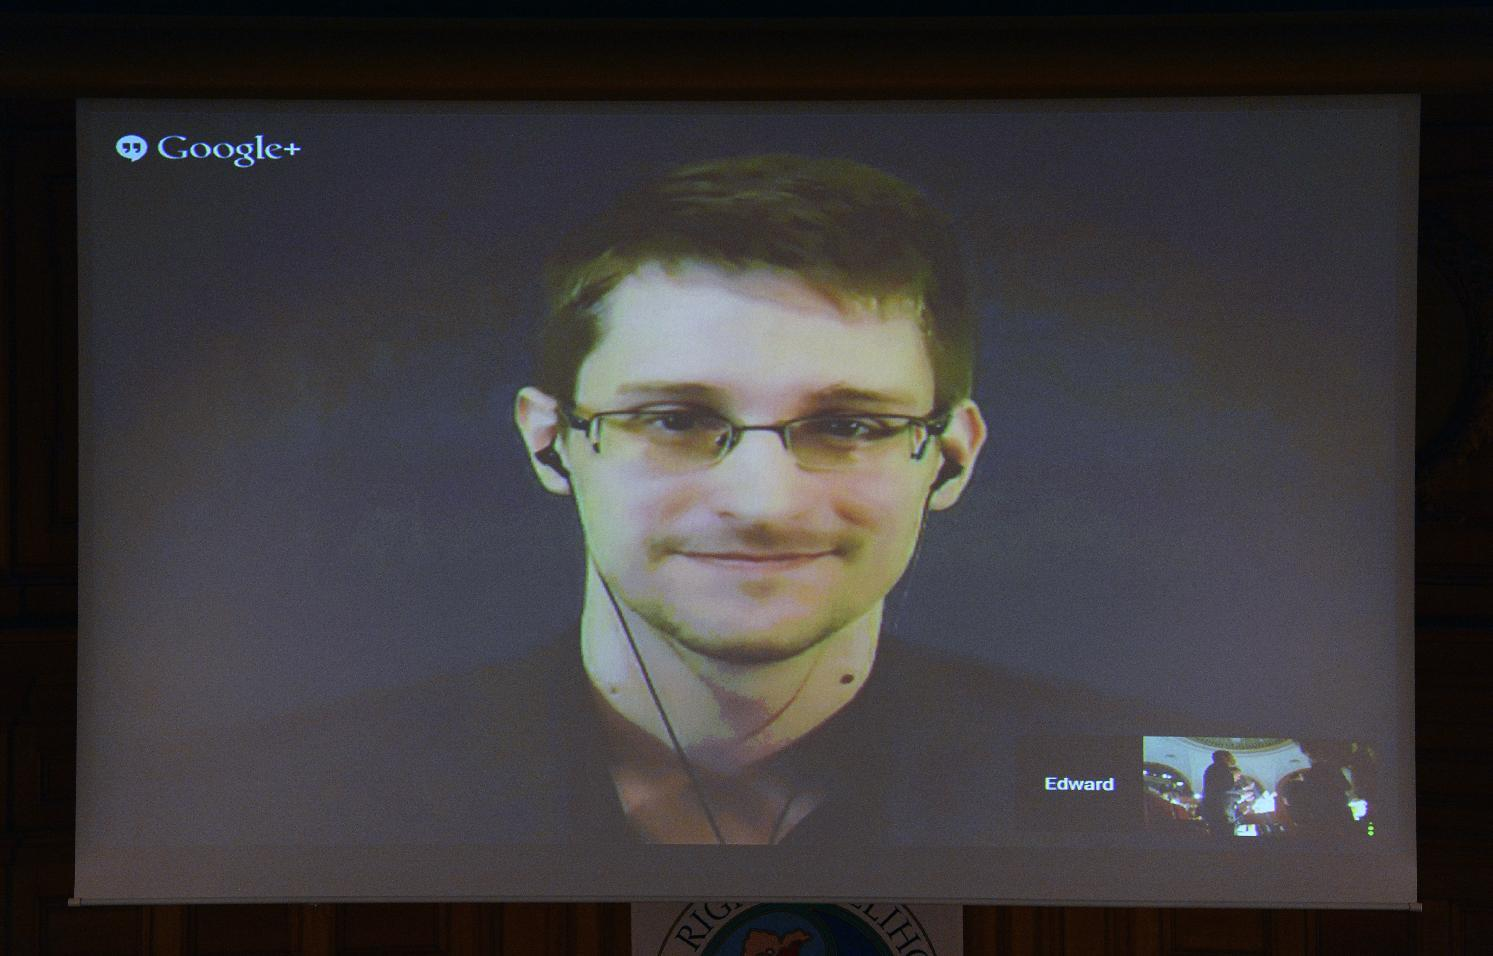 US National Security Agency (NSA) whistleblower Edward Snowden speaks via live video call at the parliament in Stockholm, Sweden, on December 1, 2014 (AFP Photo/Jonathan Nackstrand)